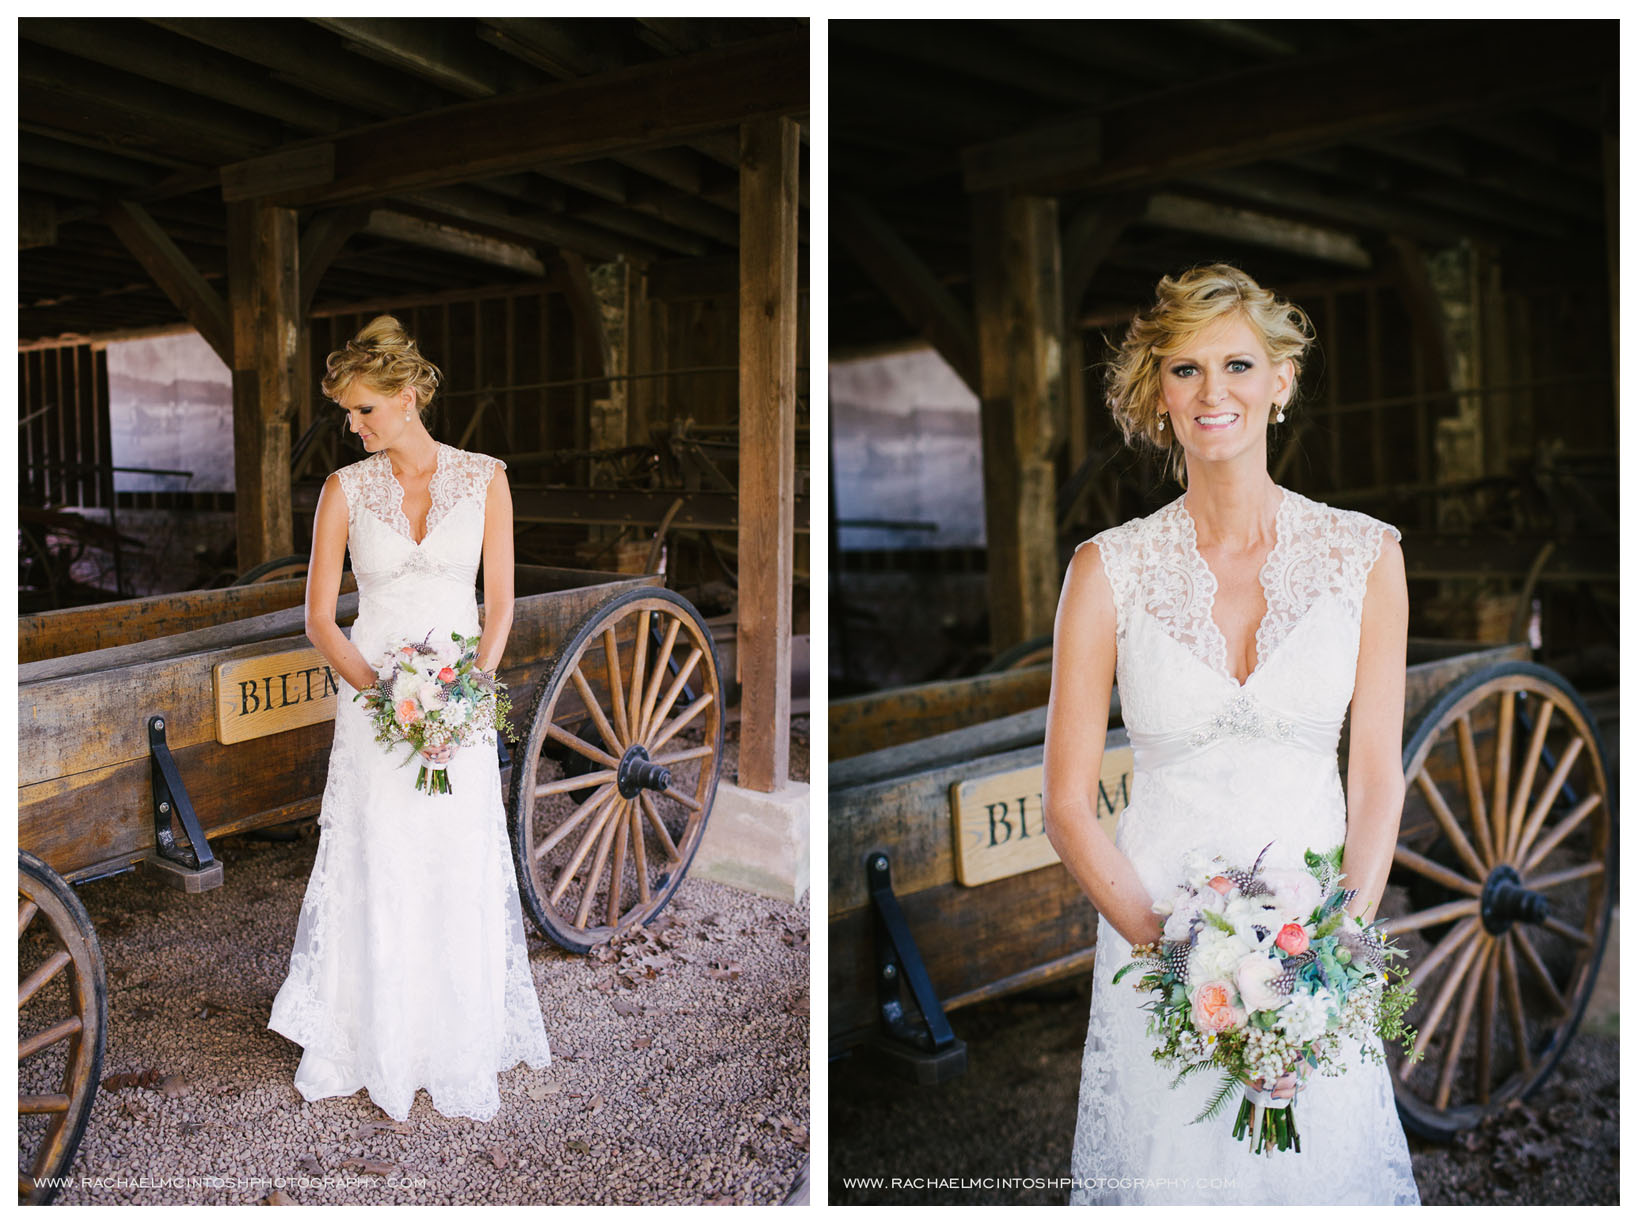 Biltmore Antler Hill Barn Wedding 50.5.jpg